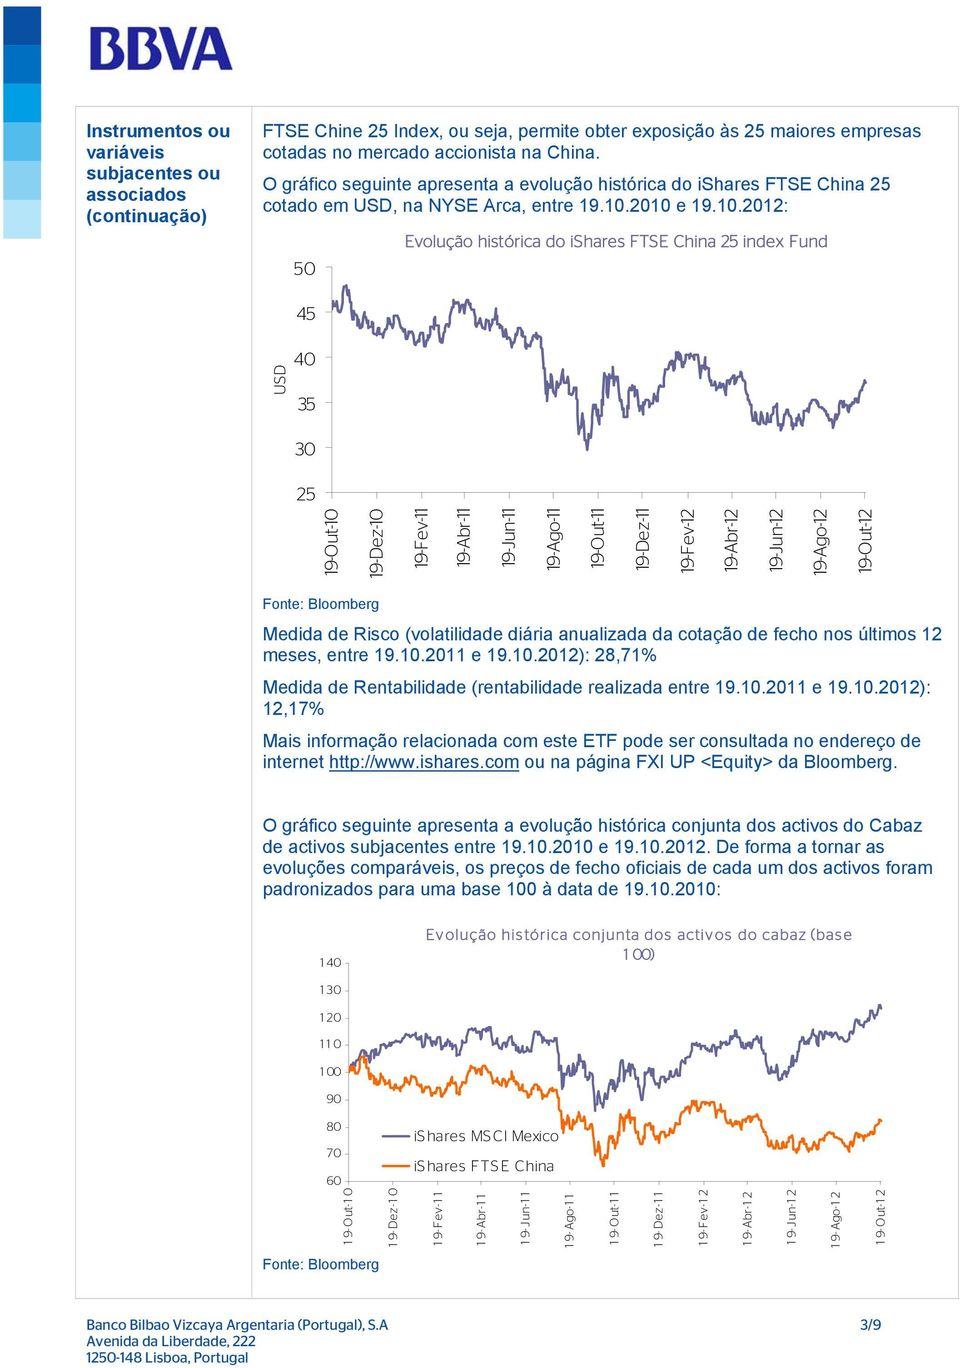 2010 e 19.10.2012: 50 Evolução histórica do ishares FTSE China 25 index Fund 45 40 35 30 25 19-Out-10 19-Dez-10 19-Fev-11 19-Abr-11 19-Jun-11 19-Ago-11 19-Out-11 19-Dez-11 19-Fev-12 19-Abr-12